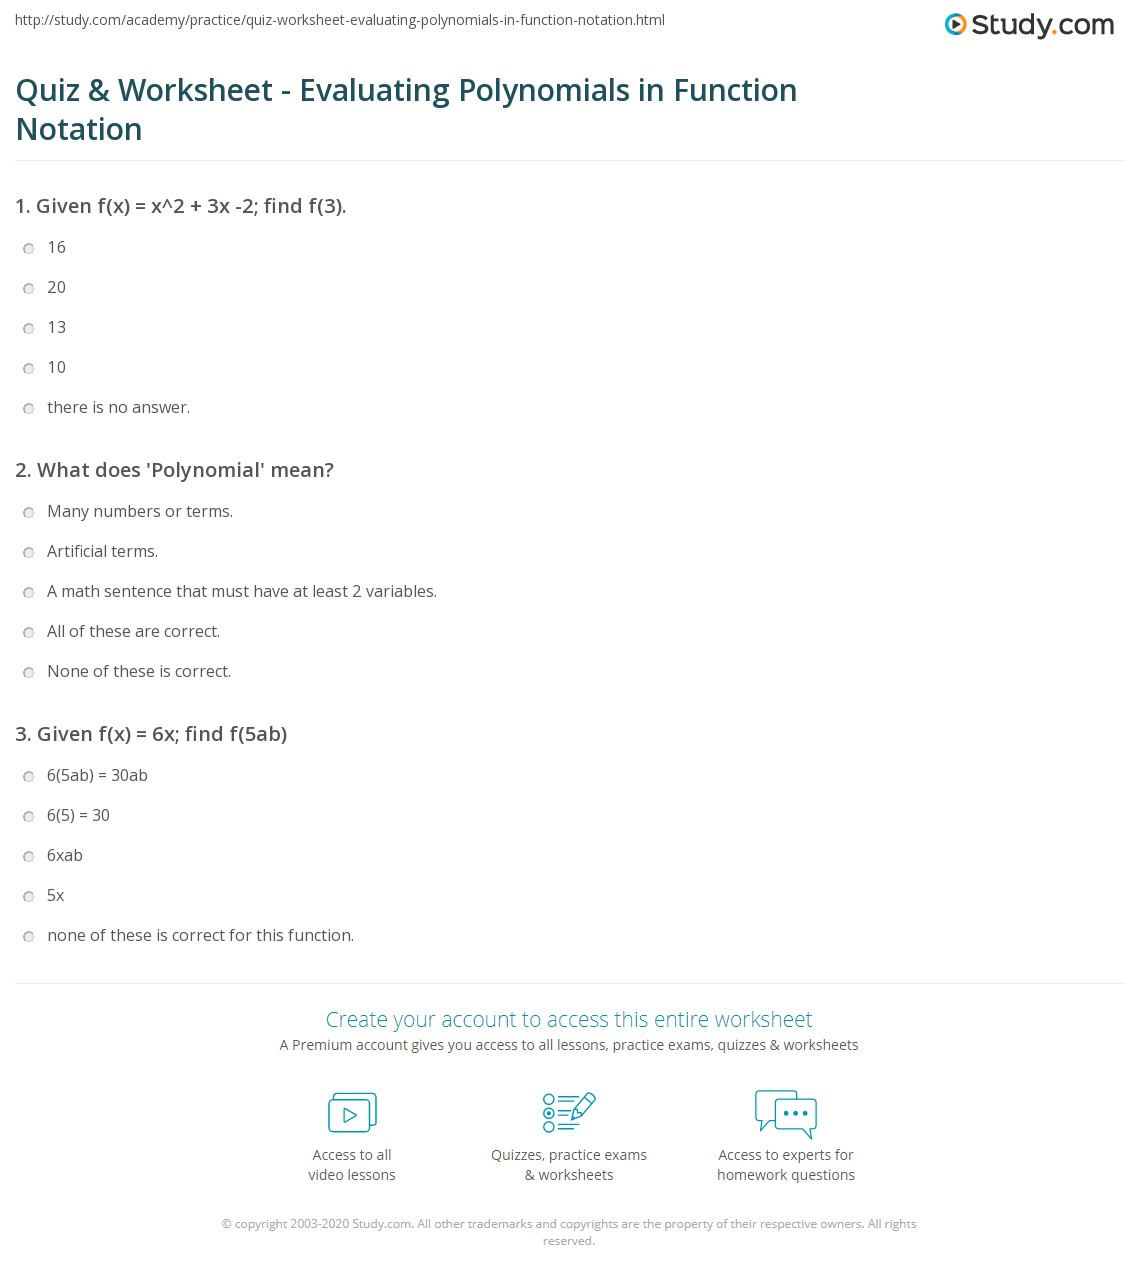 Quiz & Worksheet - Evaluating Polynomials in Function Notation ...